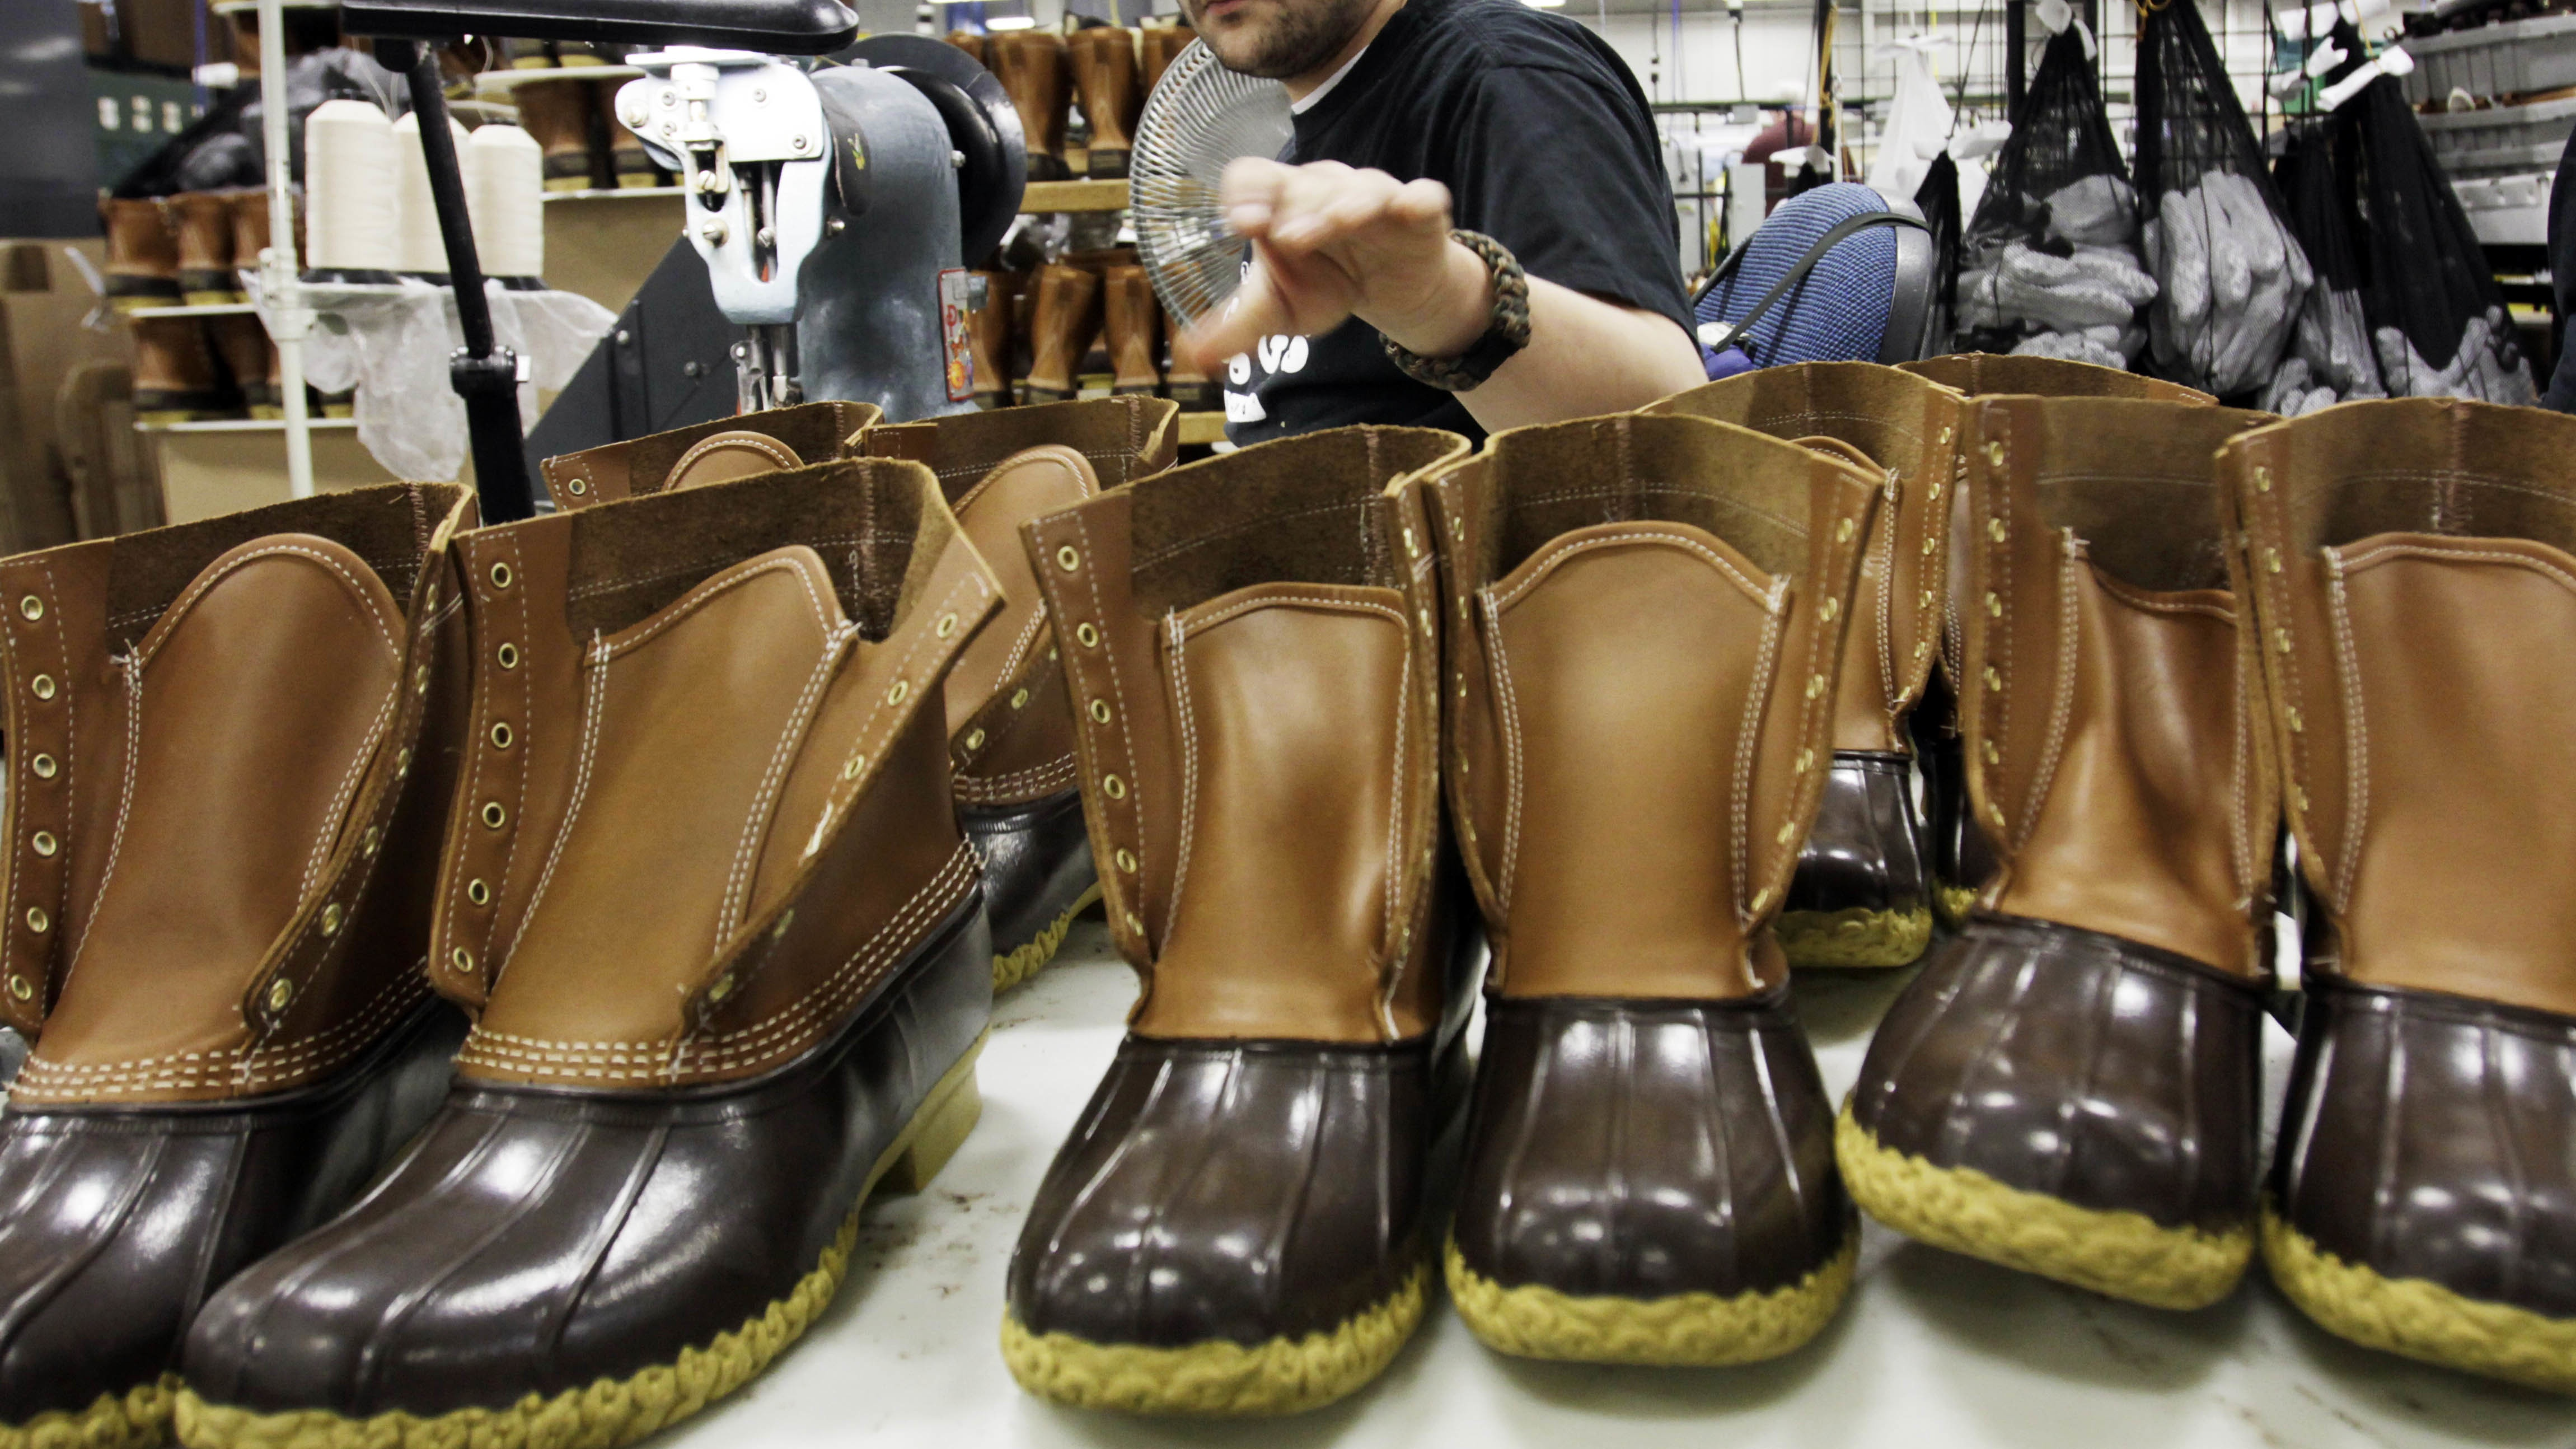 n this Dec. 14, 2011, file photo, Eric Rego stitches boots in the facility where LL Bean boots are assembled in Brunswick, Maine. L.L. Bean is kicking it up a notch as demand continues to surge for its iconic boot. The Maine-based outdoors retailer has leased a 110,000-square-foot building and plans to install a third injection-molding machine. The company is boosting production to meet demand that's expected to reach 1 million pairs in 2018. (AP Photo/Pat Wellenbach, File)